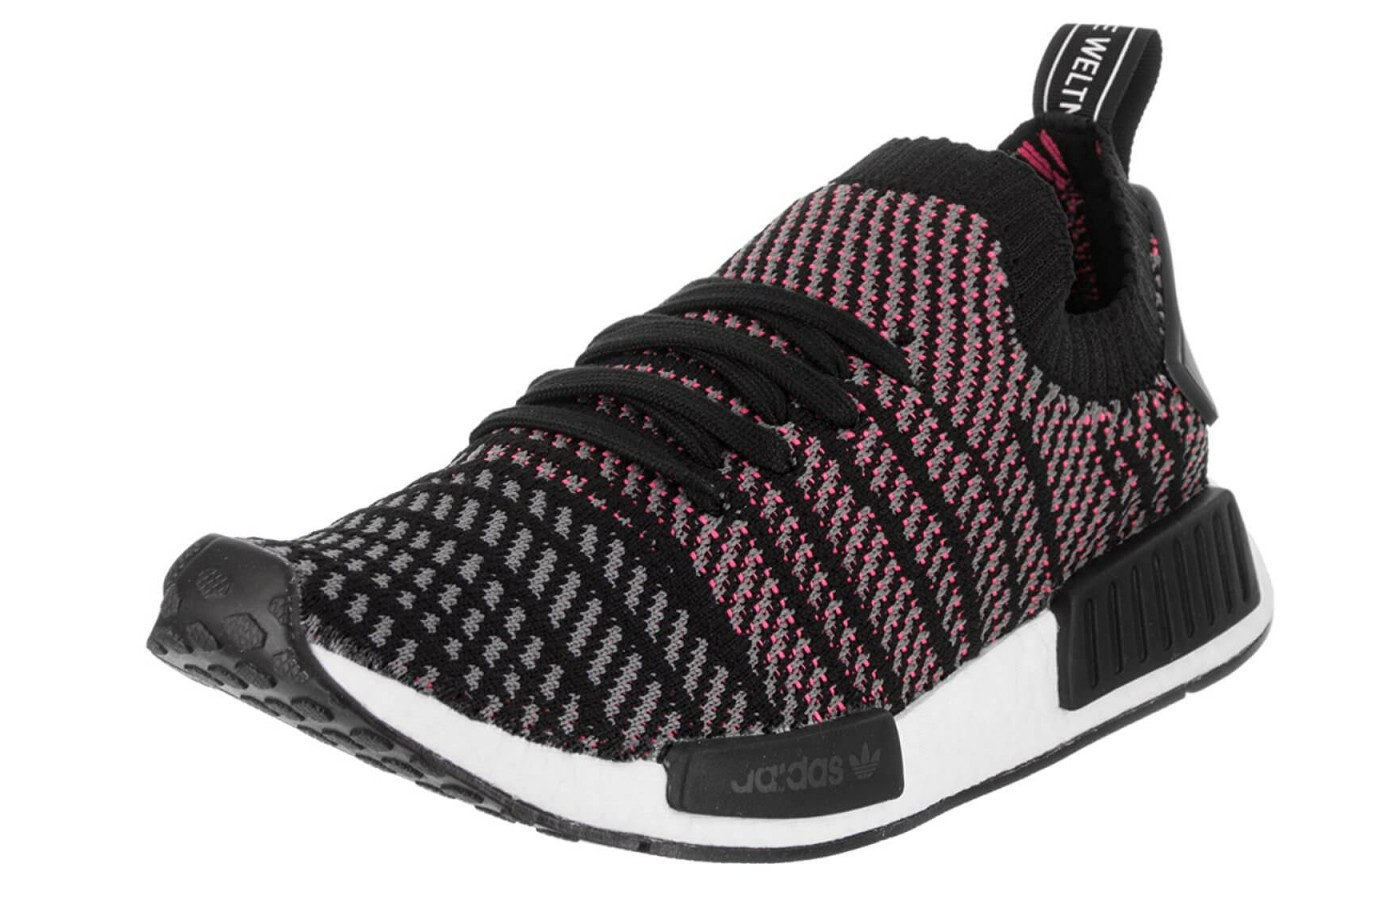 4f543ff18852a The Adidas NMD R1 Stlt Primeknit features a Primeknit upper ...